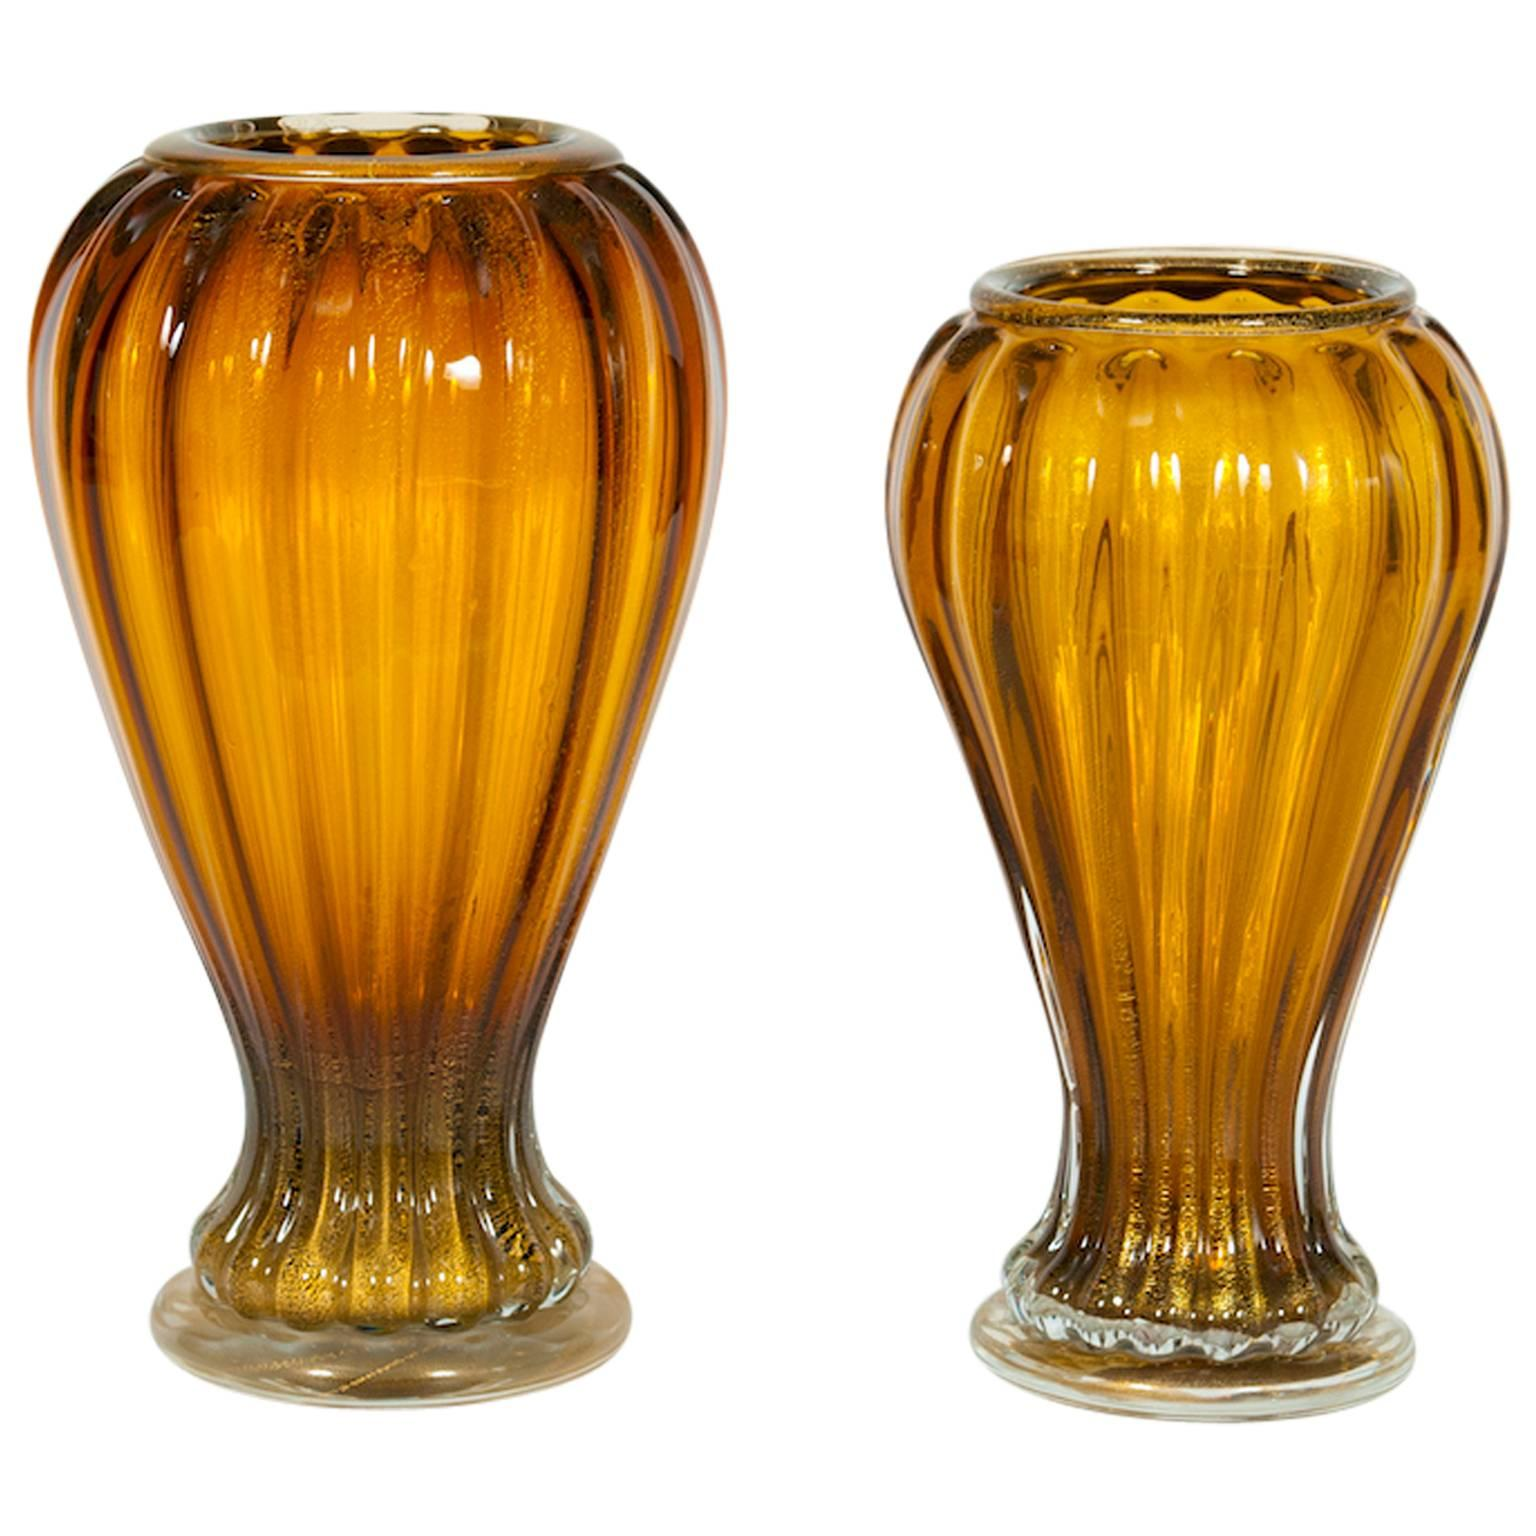 Pair of Italian Vases in Murano Glass Amber and Gold 1990s